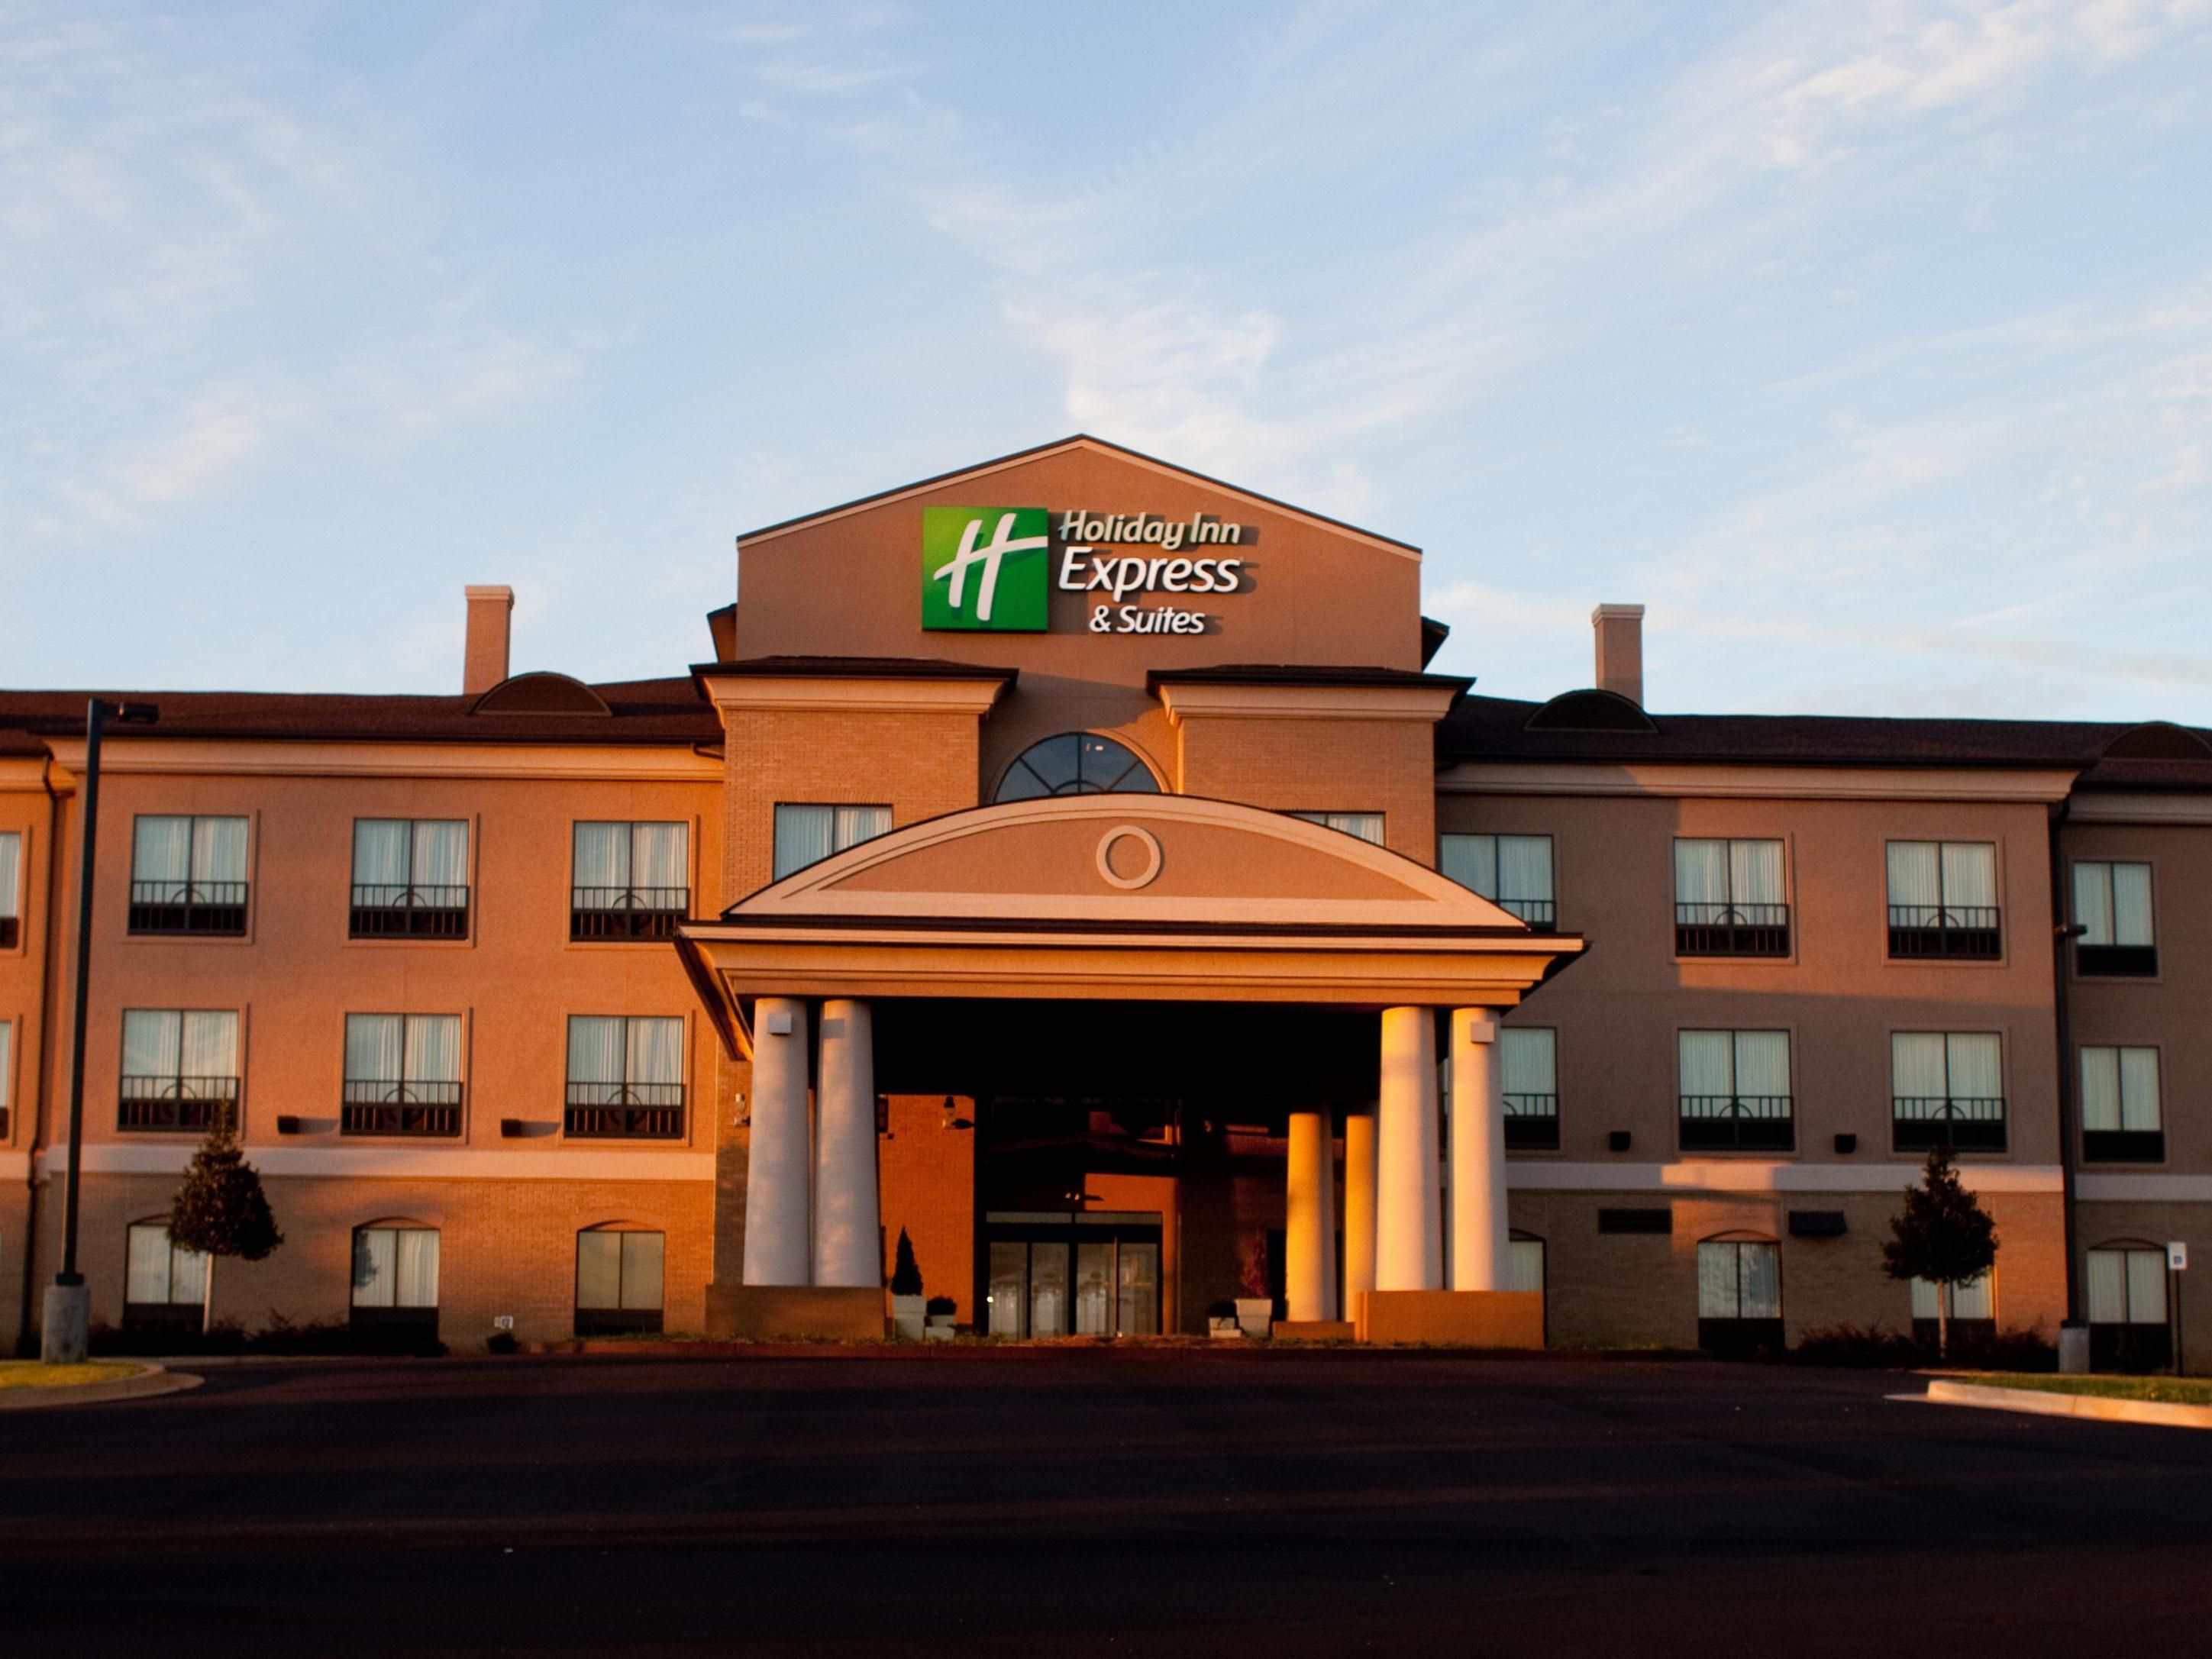 The Holiday Inn Express and Suites Prattville South